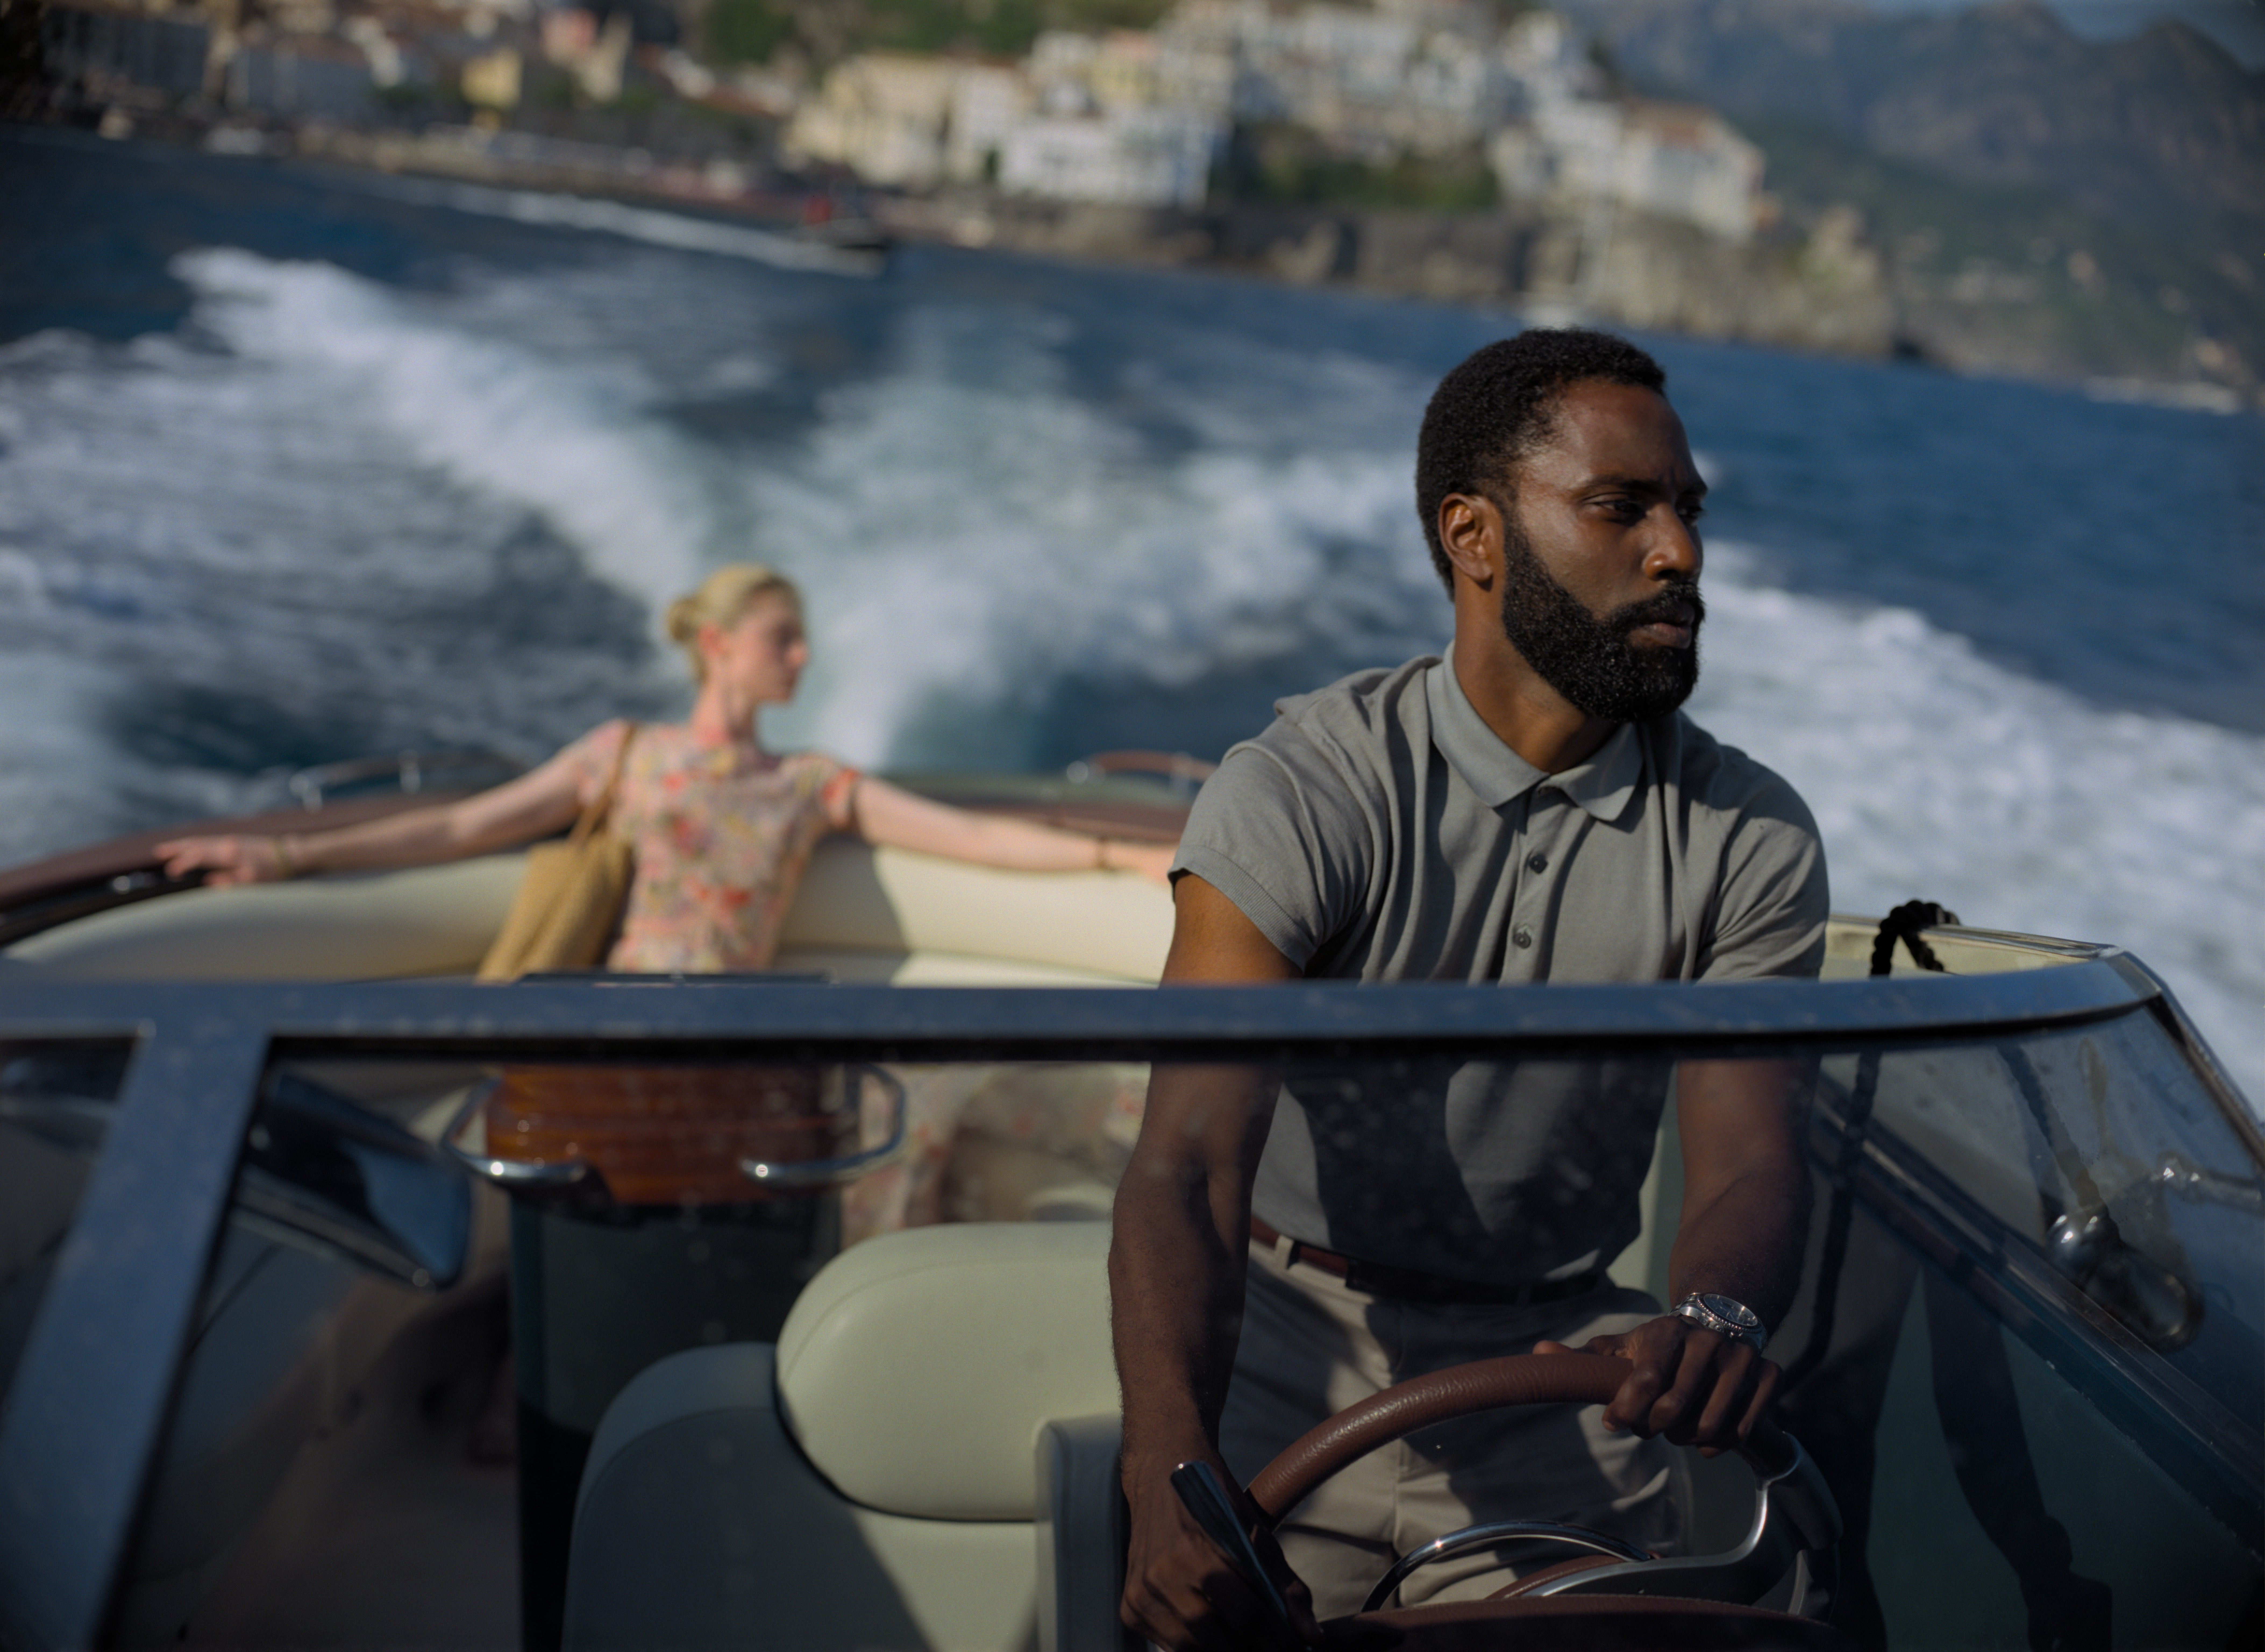 (L-r) ELIZABETH DEBICKI et JOHN DAVID WASHINGTON dans l'épopée d'action de Warner Bros Pictures